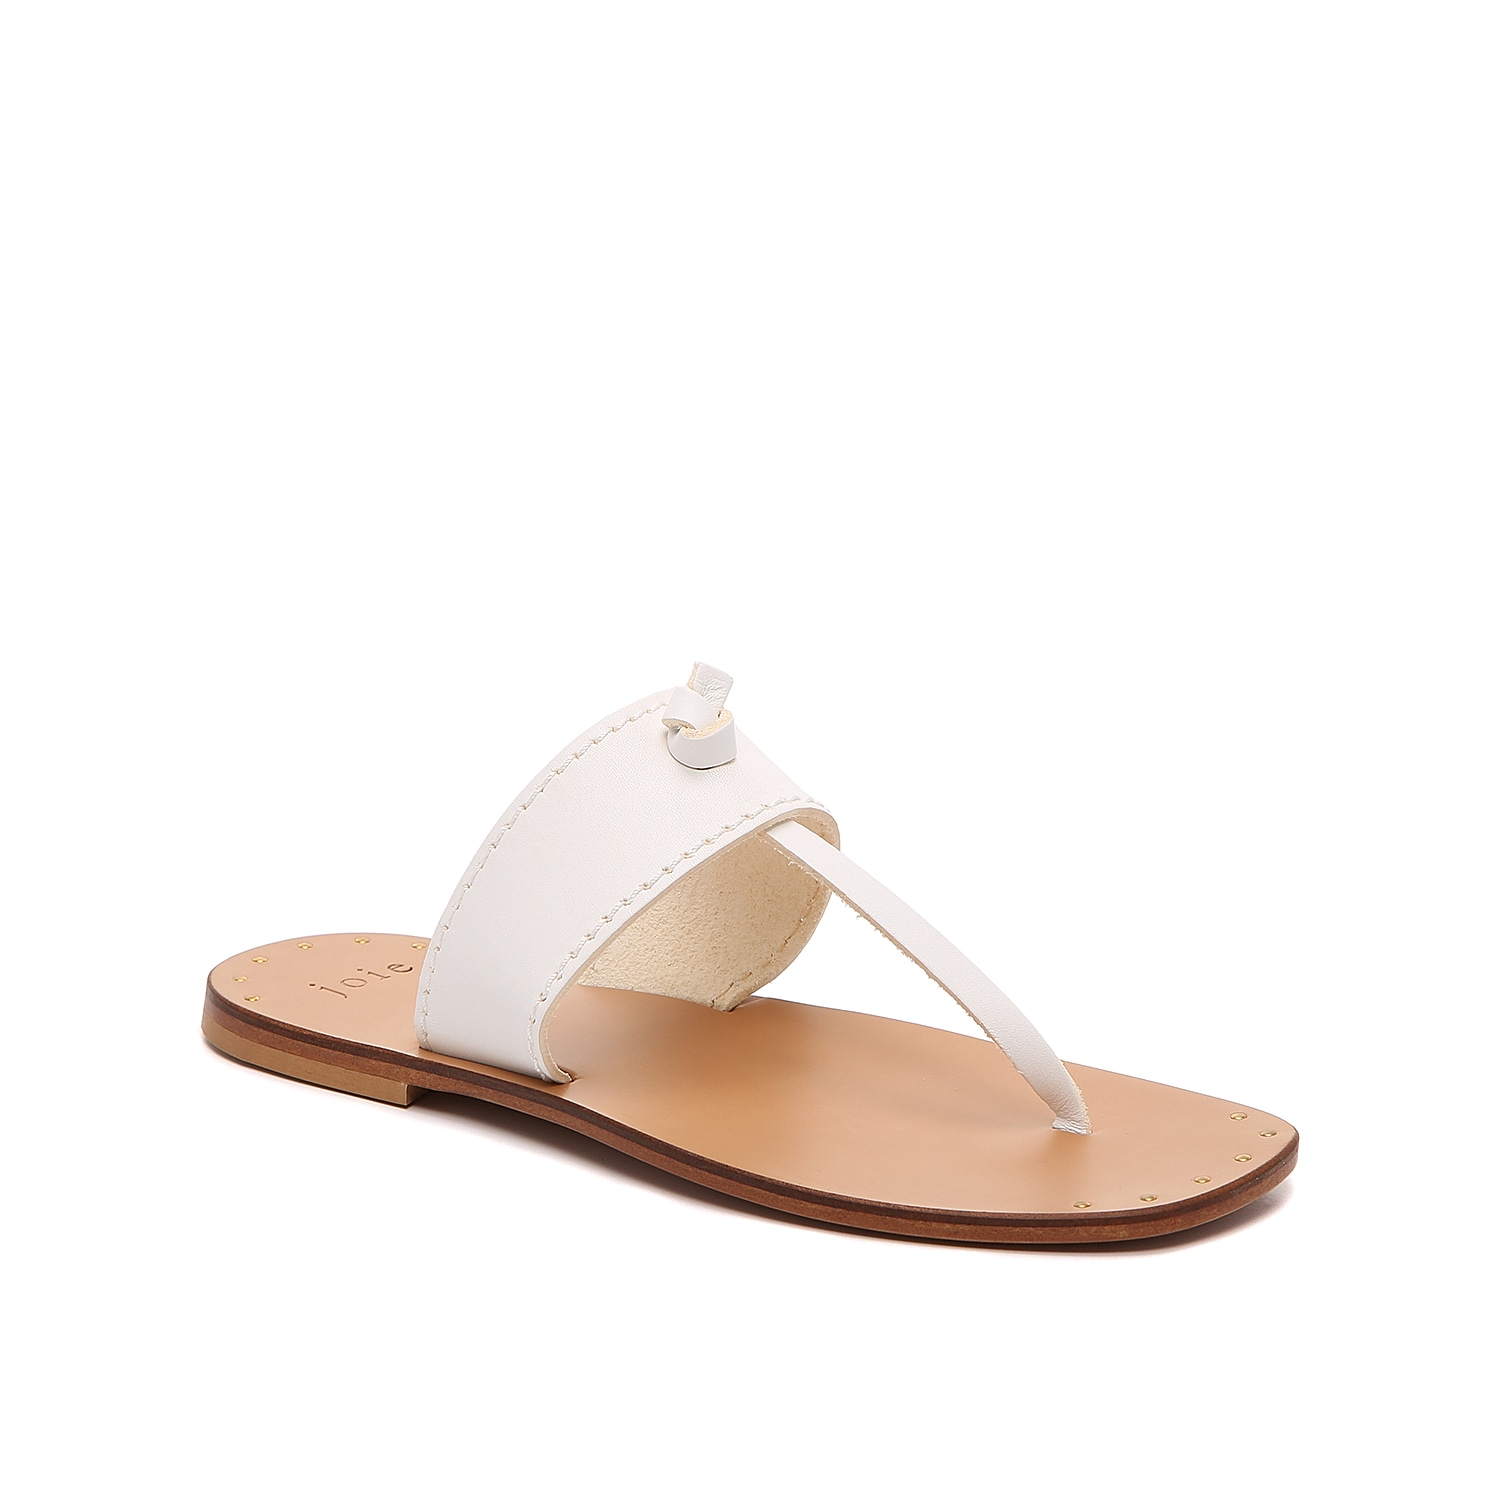 The Baylin sandal from Joie easily pairs with your warm-weather wardrobe. This leather silhouette is fashioned with a squared off toe and stud accents for extra appeal.